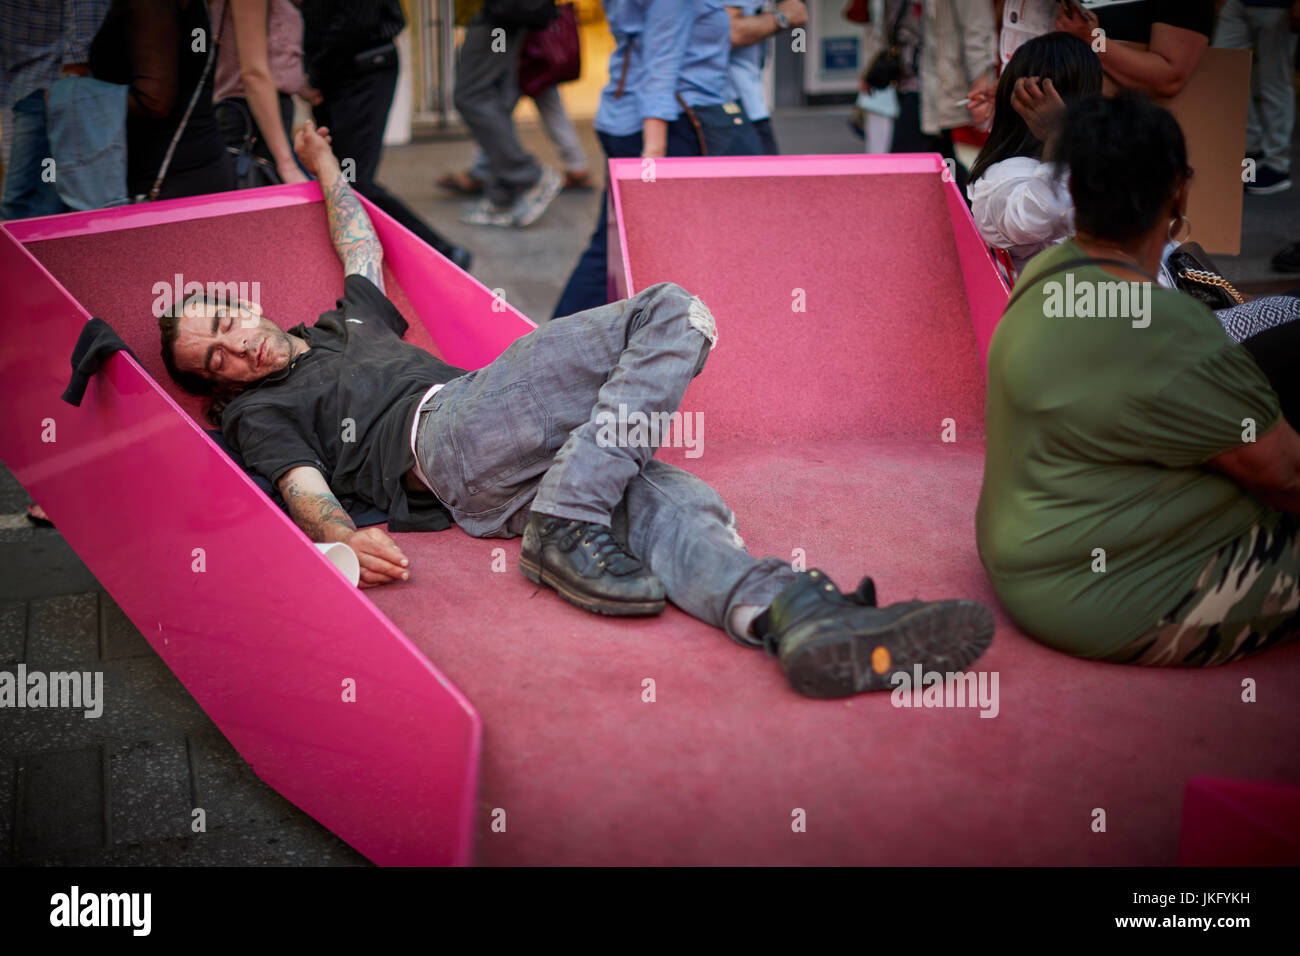 New York City, Manhattan, United States, man sleeping amongst the tourists on modern pink street furniture benches - Stock Image